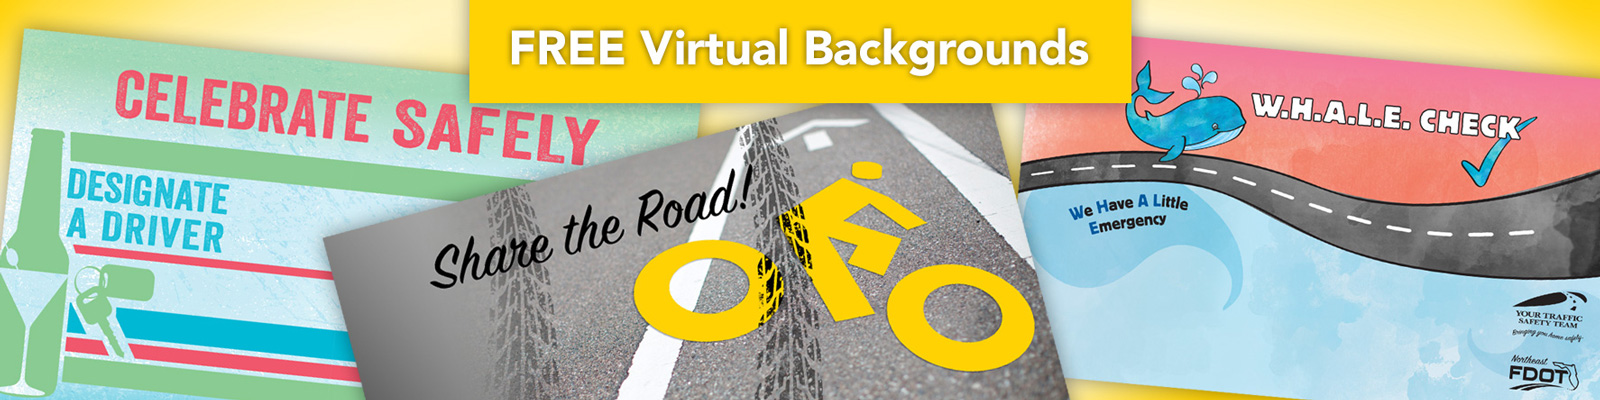 Traffic Safety Virtual Backgrounds